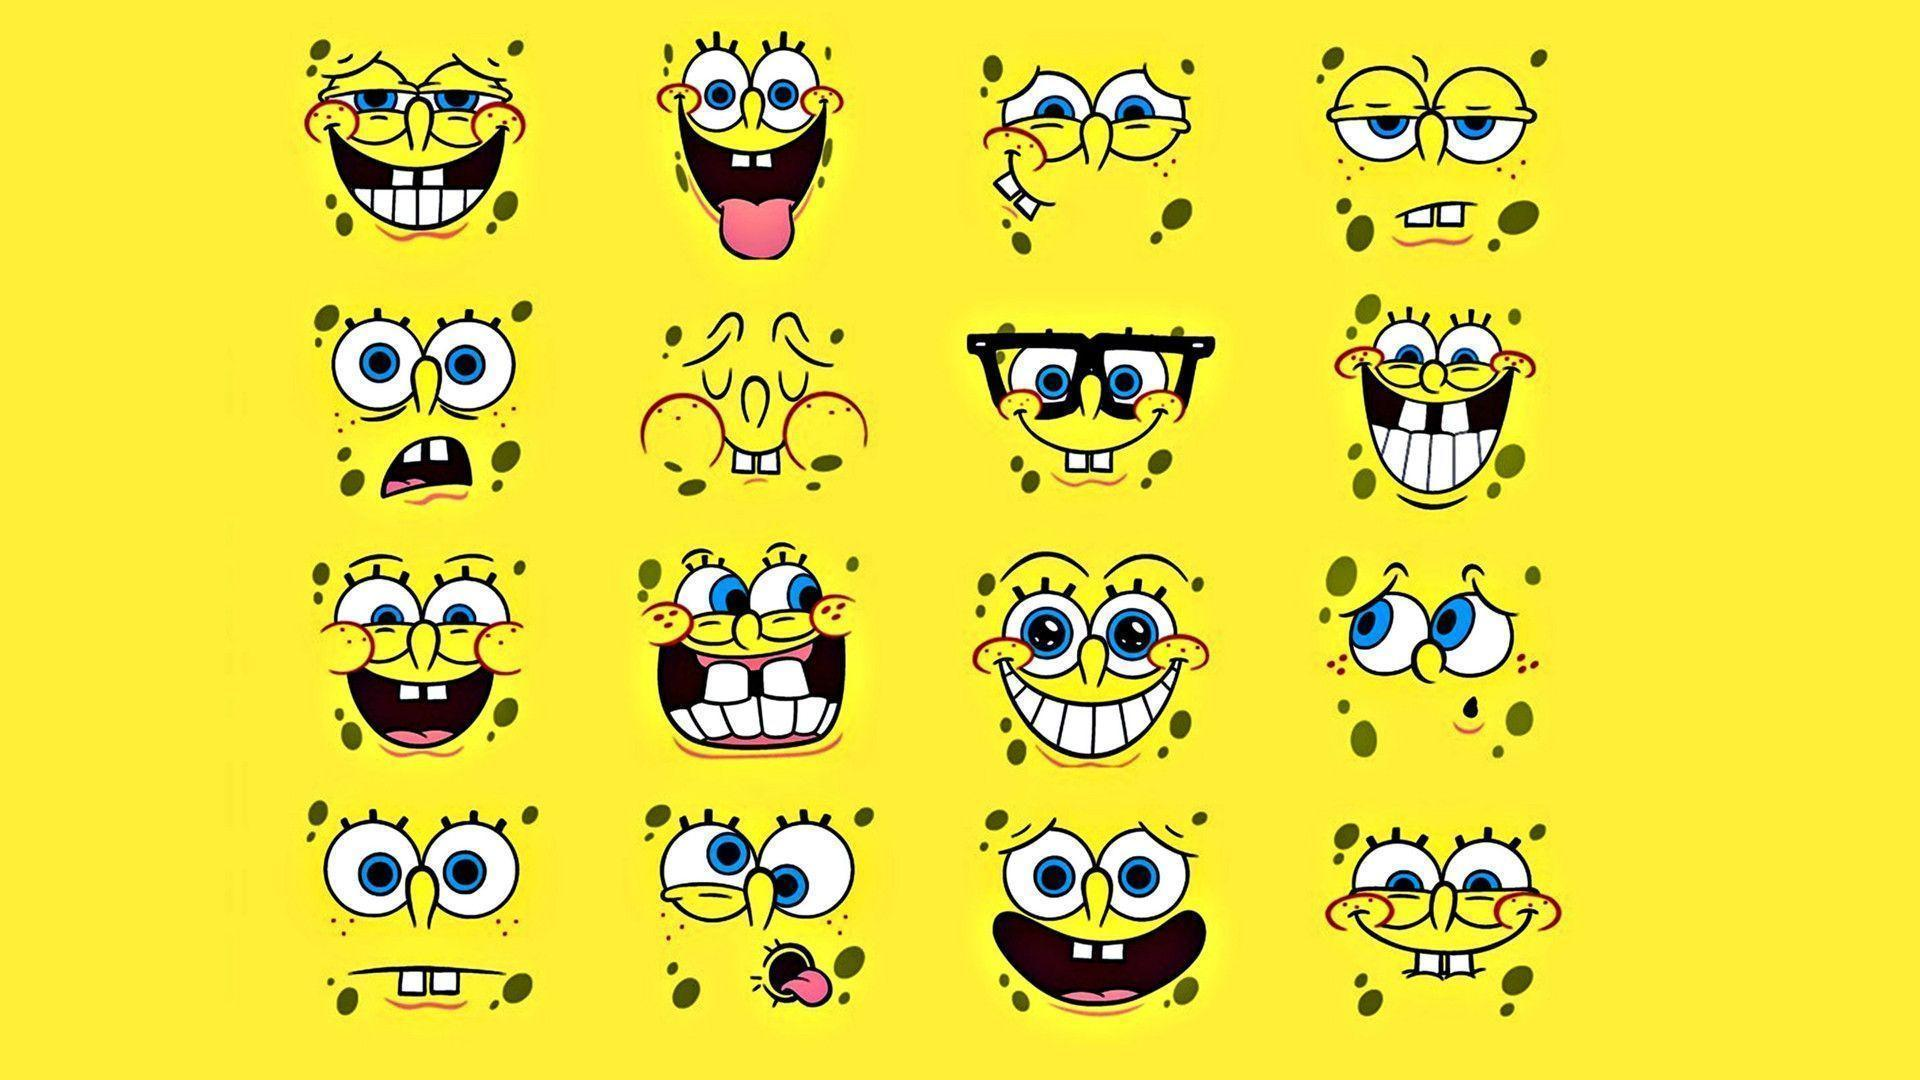 Spongebob Wallpaper, HQ Backgrounds | HD wallpapers Gallery ...